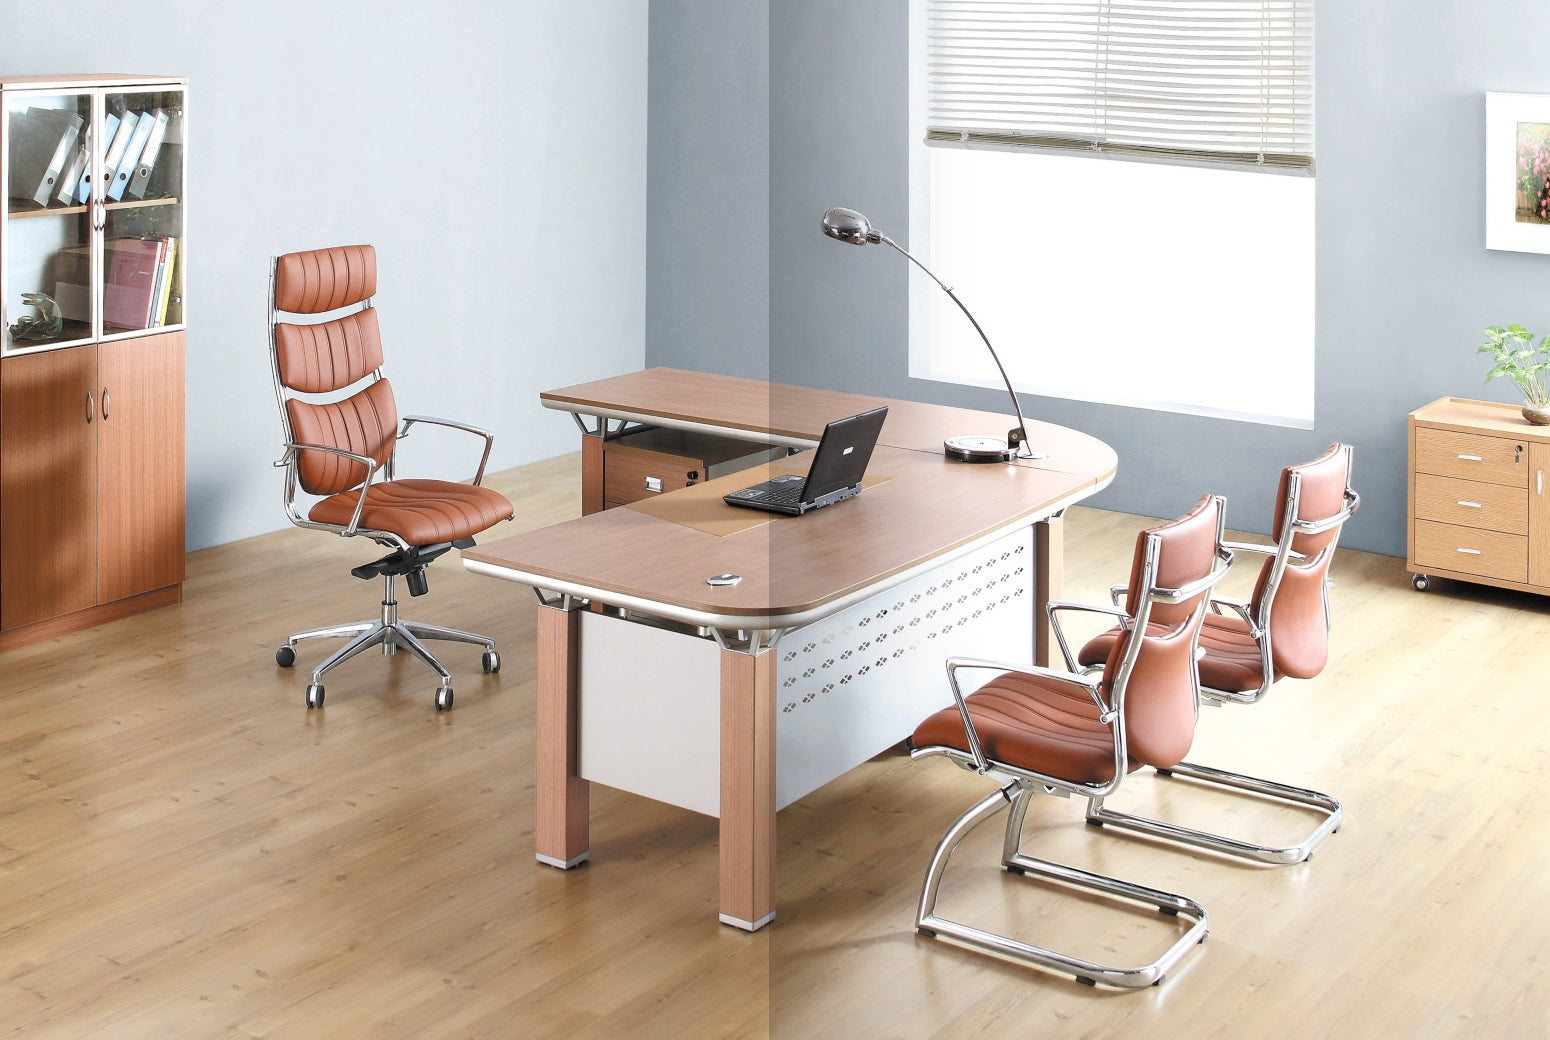 Eames reception office chairs dining chairs designer for Office design outlet